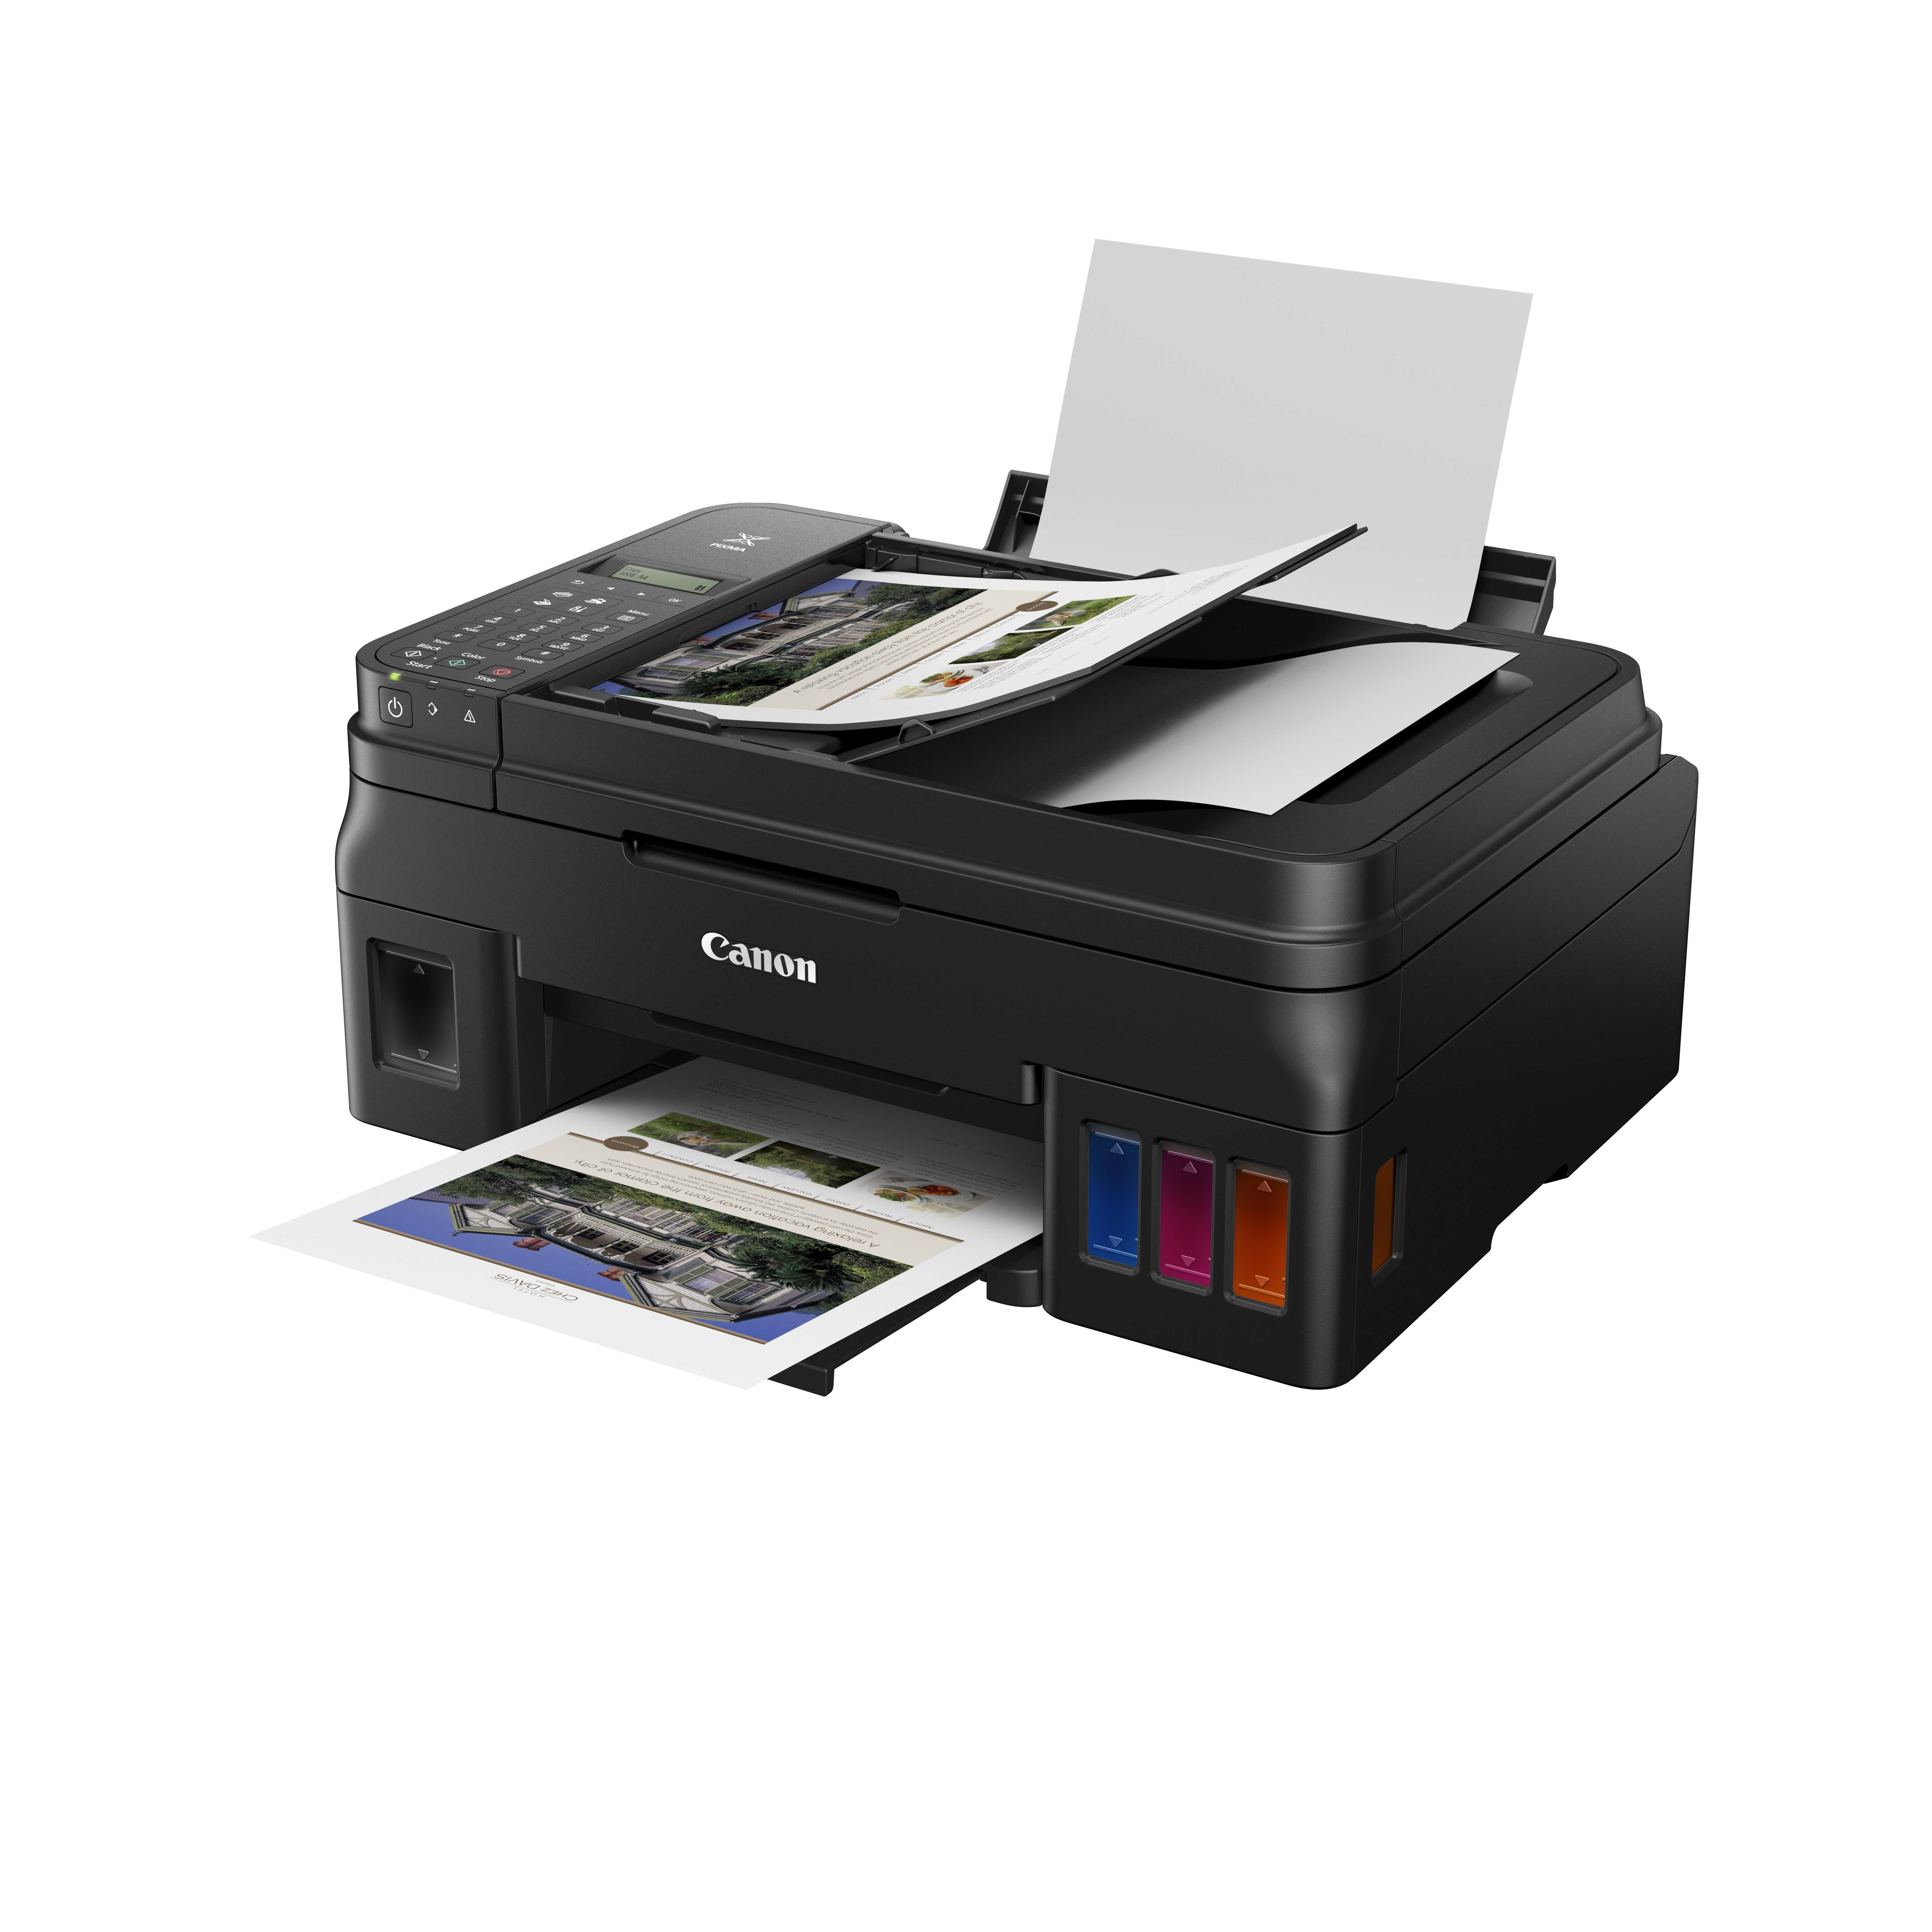 New range of refillable ink tank printers - EE Publishers